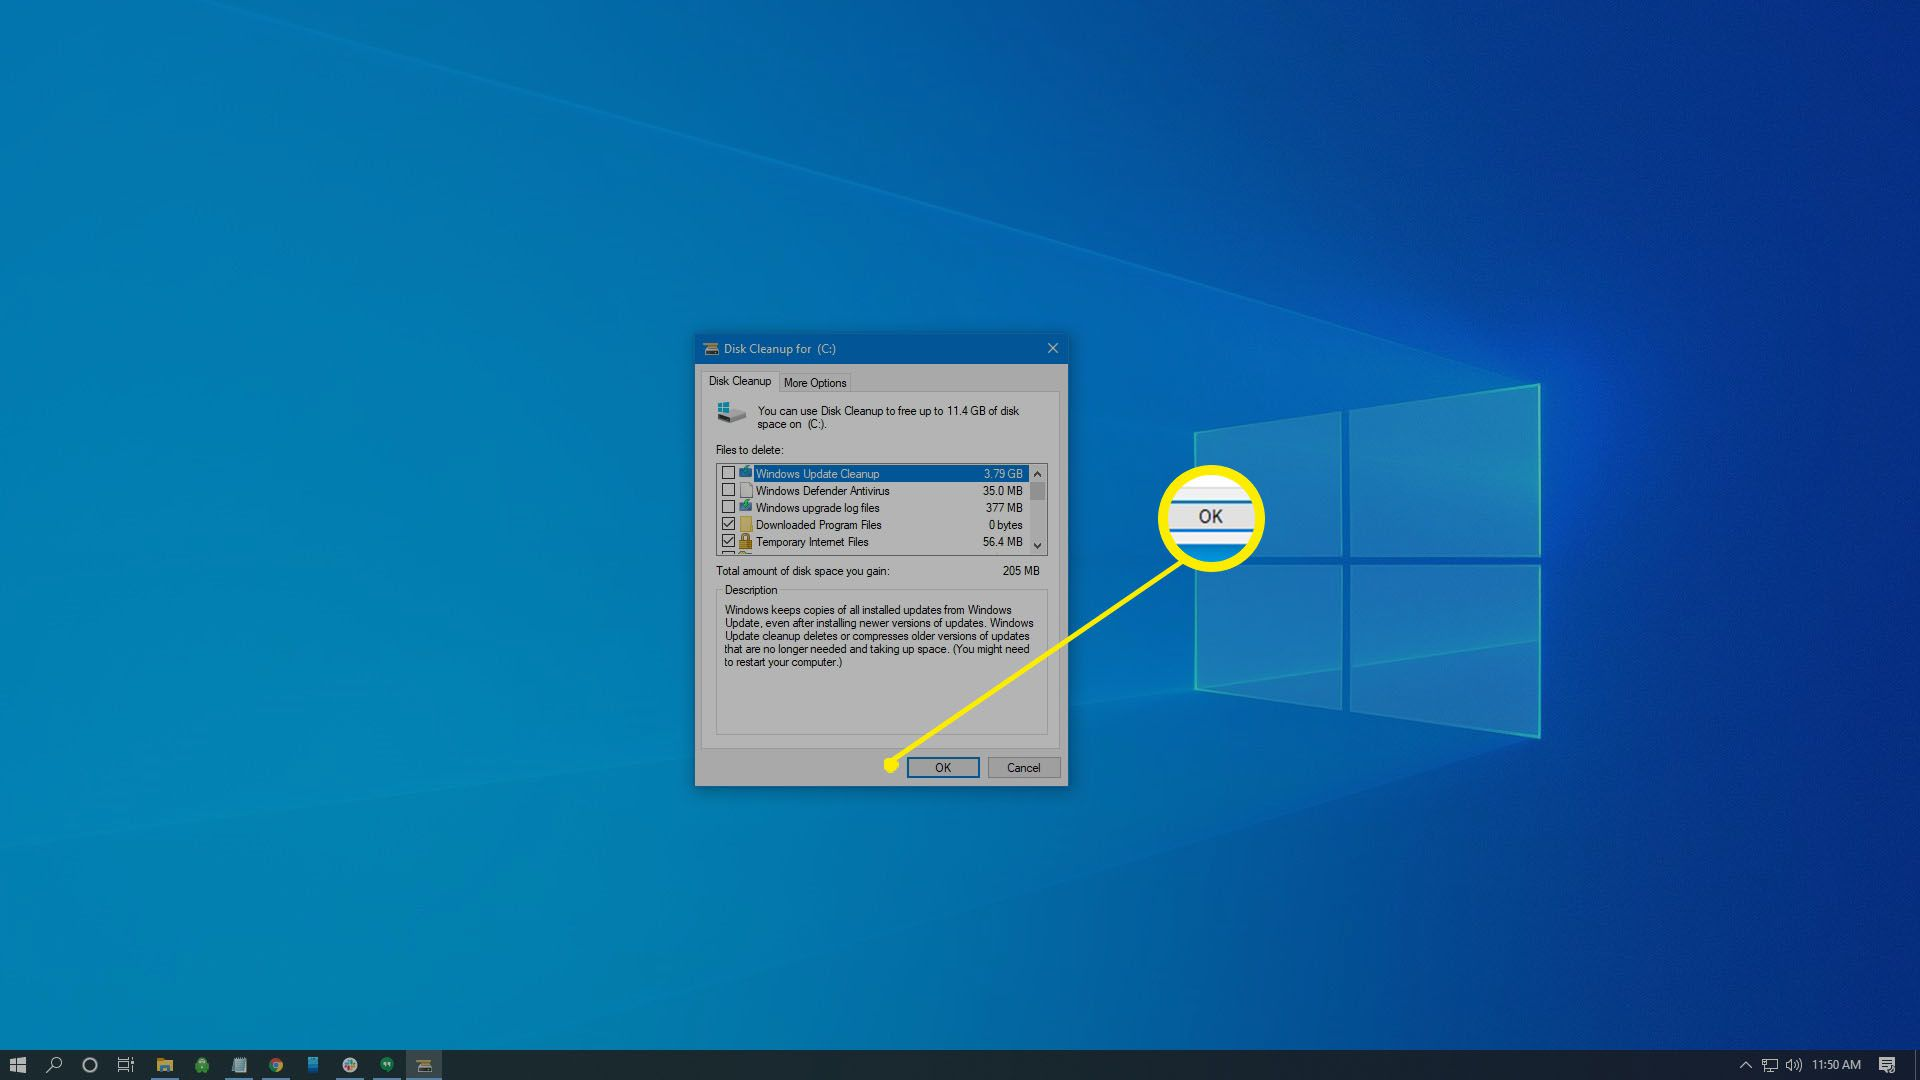 Once Disk Cleanup loads again, select the files you'd like to remove, then select OK.